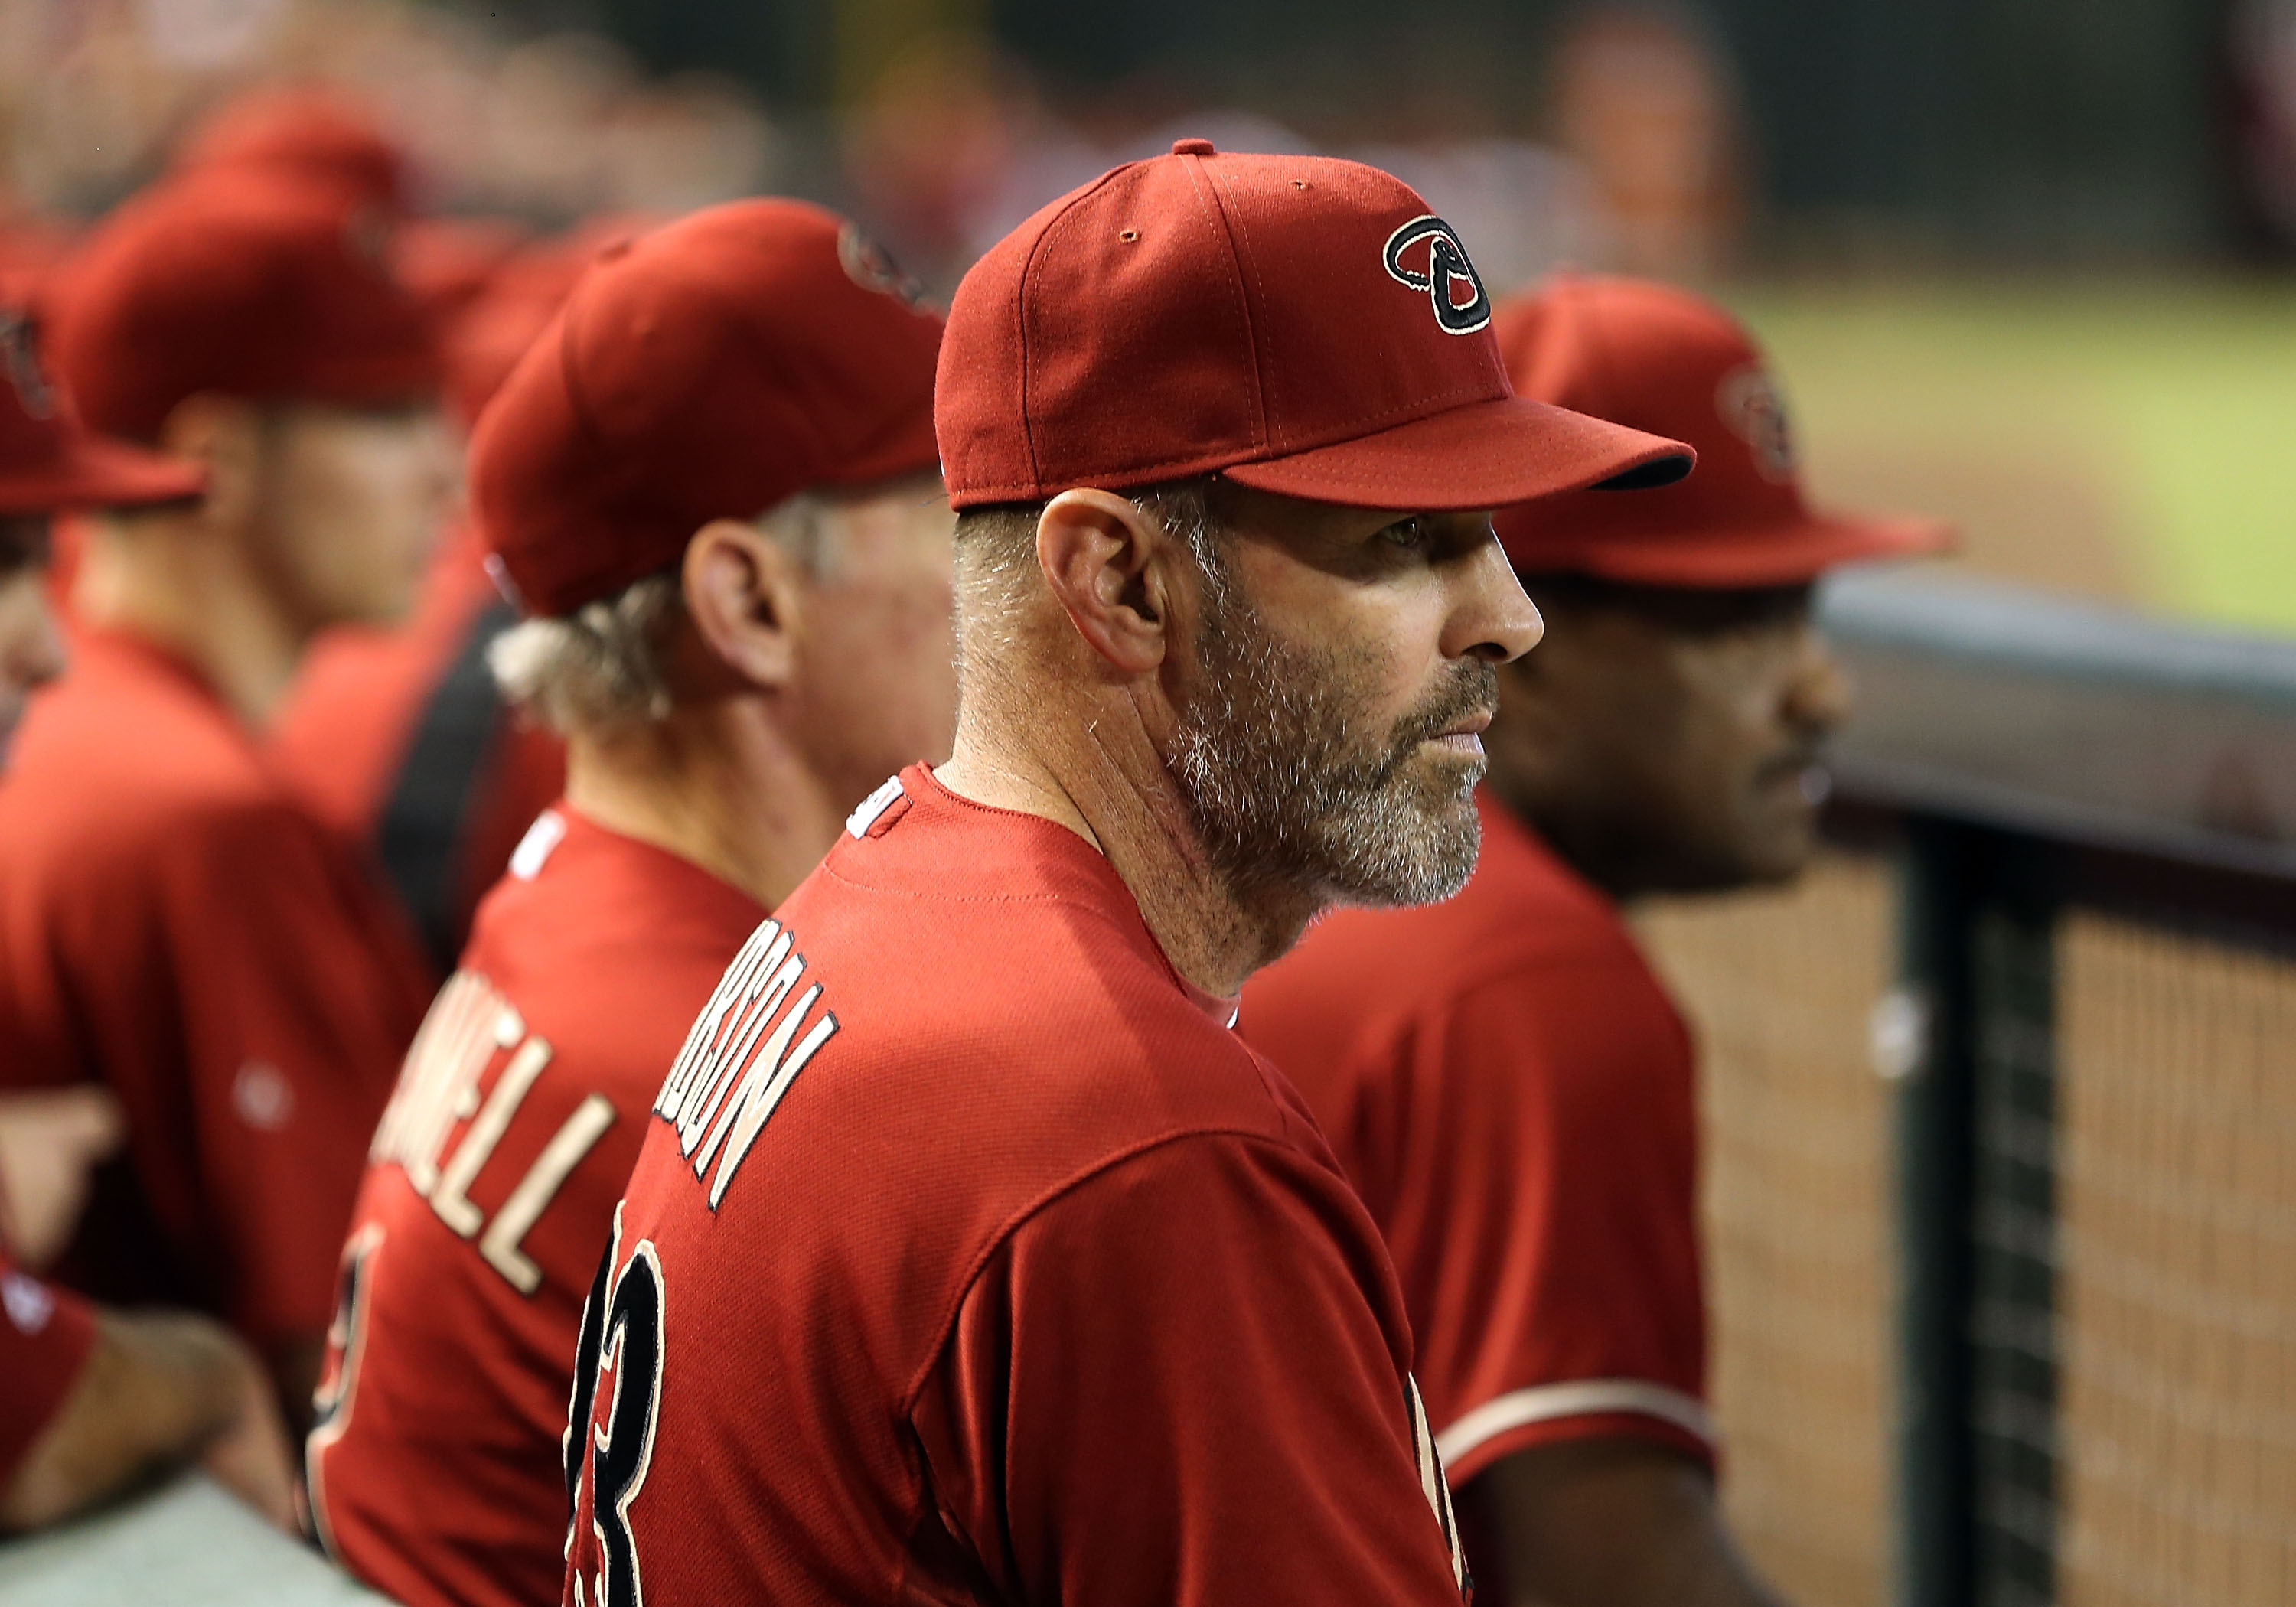 PHOENIX, AZ - OCTOBER 03:  Manager Kirk Gibson of the Arizona Diamondbacks watches from the dugout during the MLB game against the Colorado Rockies at Chase Field on October 3, 2012 in Phoenix, Arizona.  (Photo by Christian Petersen/Getty Images)